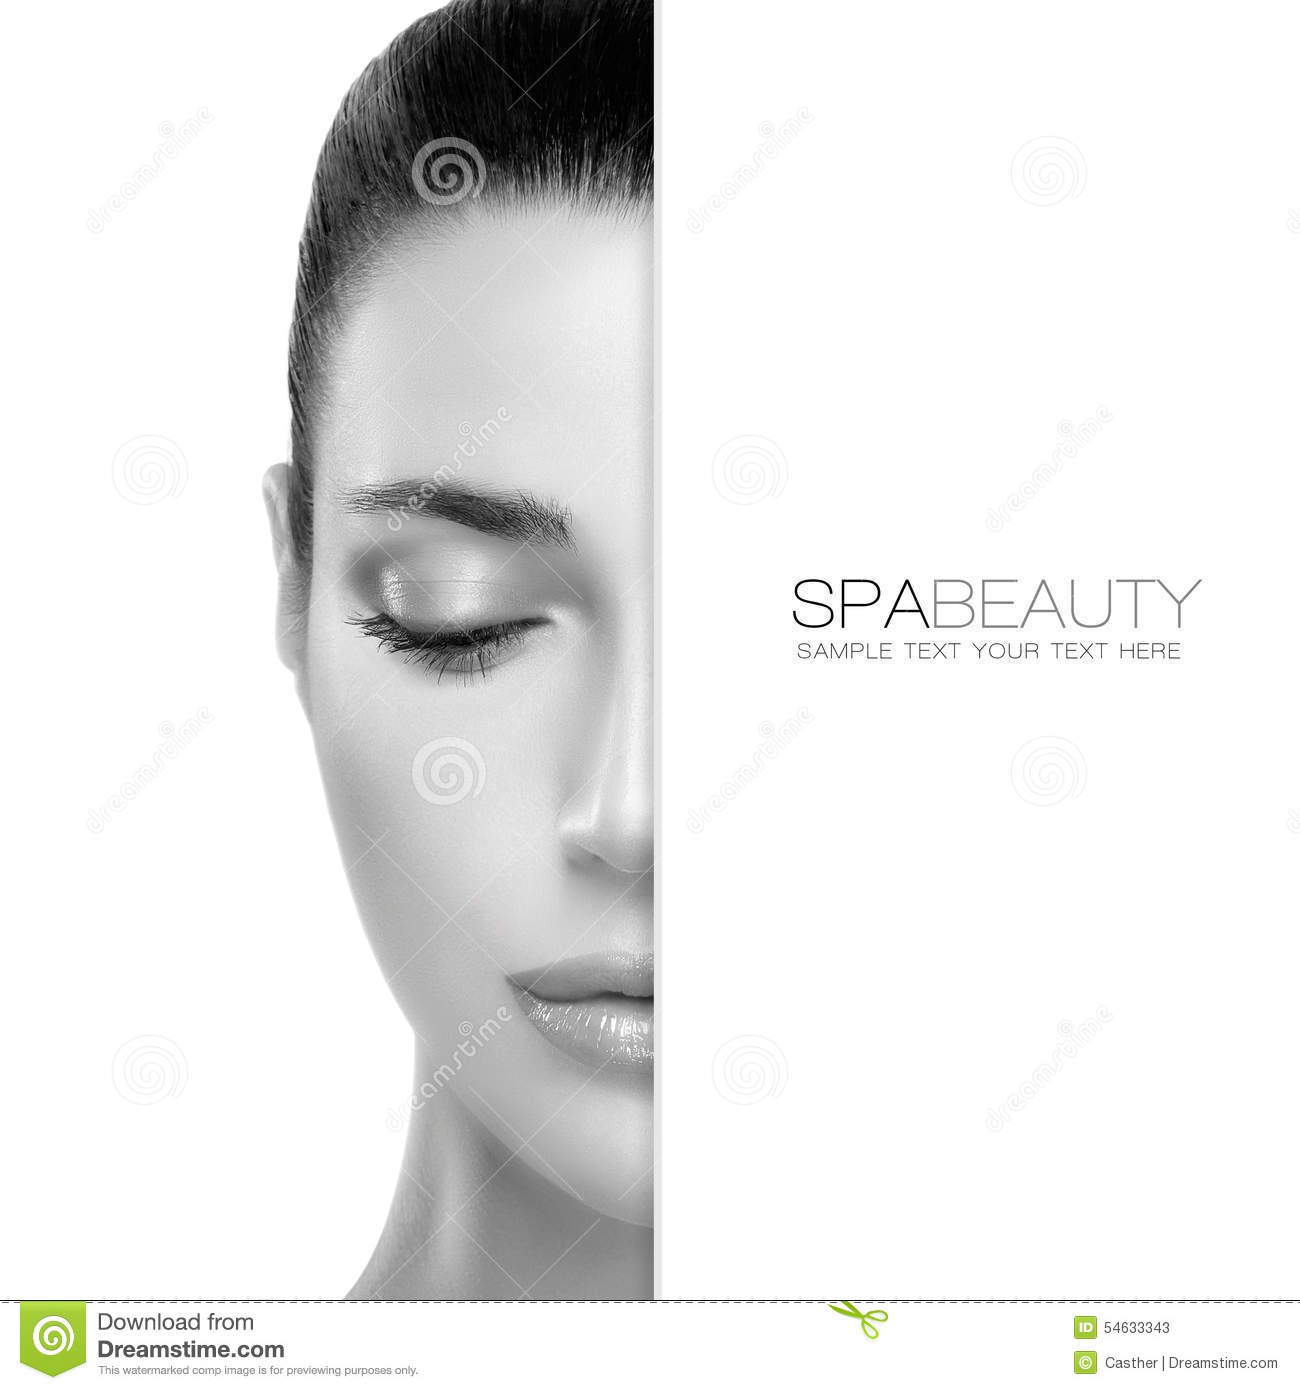 Spa Beauty and Skincare concept. Template Design